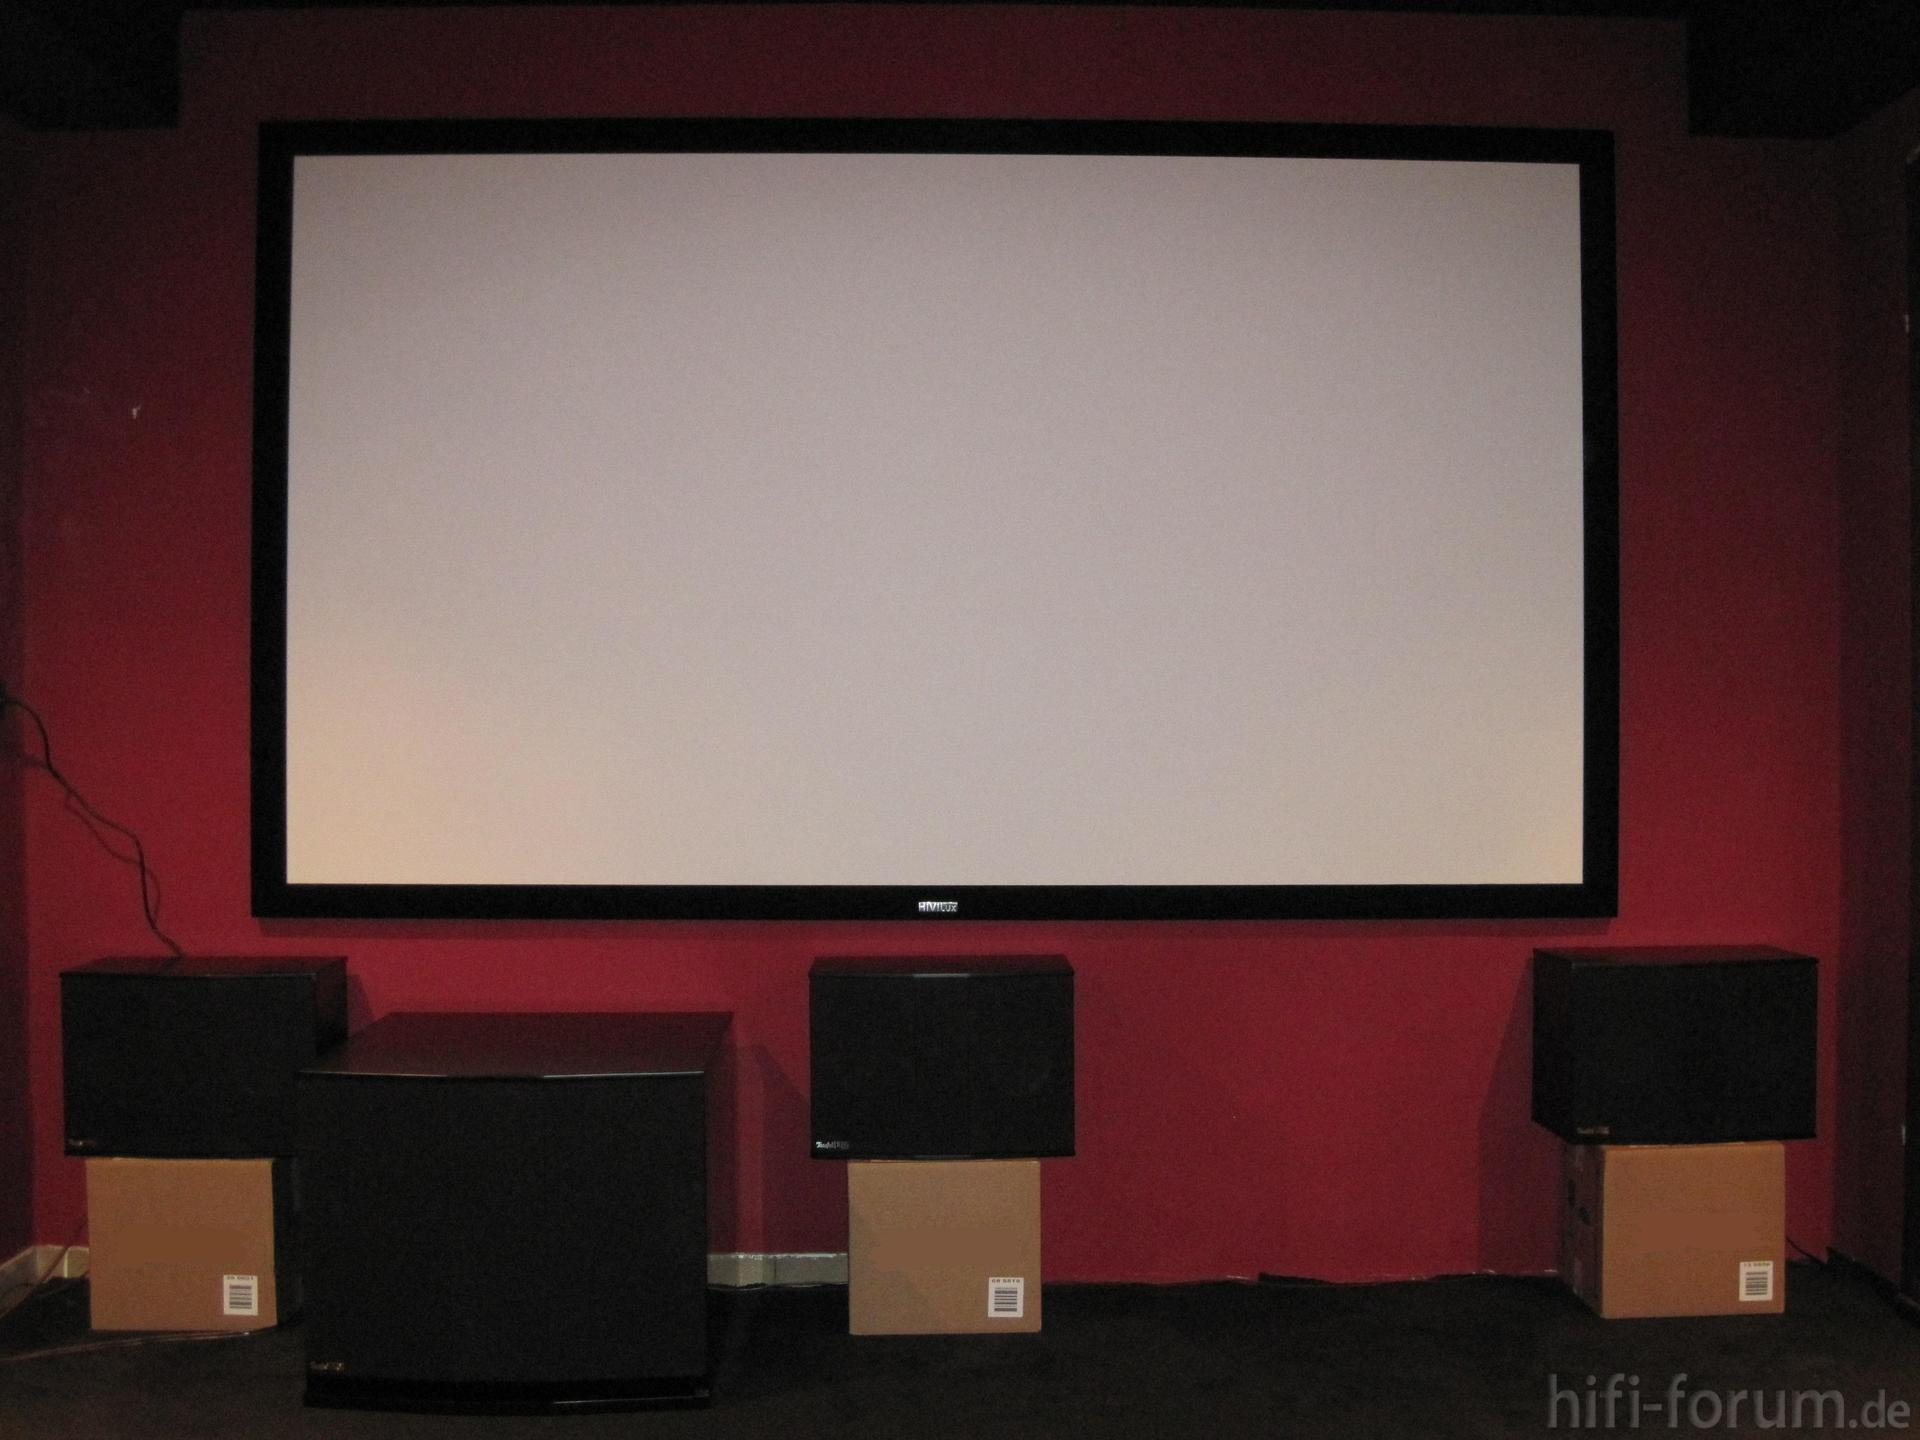 front teufel theater 8 thx ultra 2 front heimkino. Black Bedroom Furniture Sets. Home Design Ideas